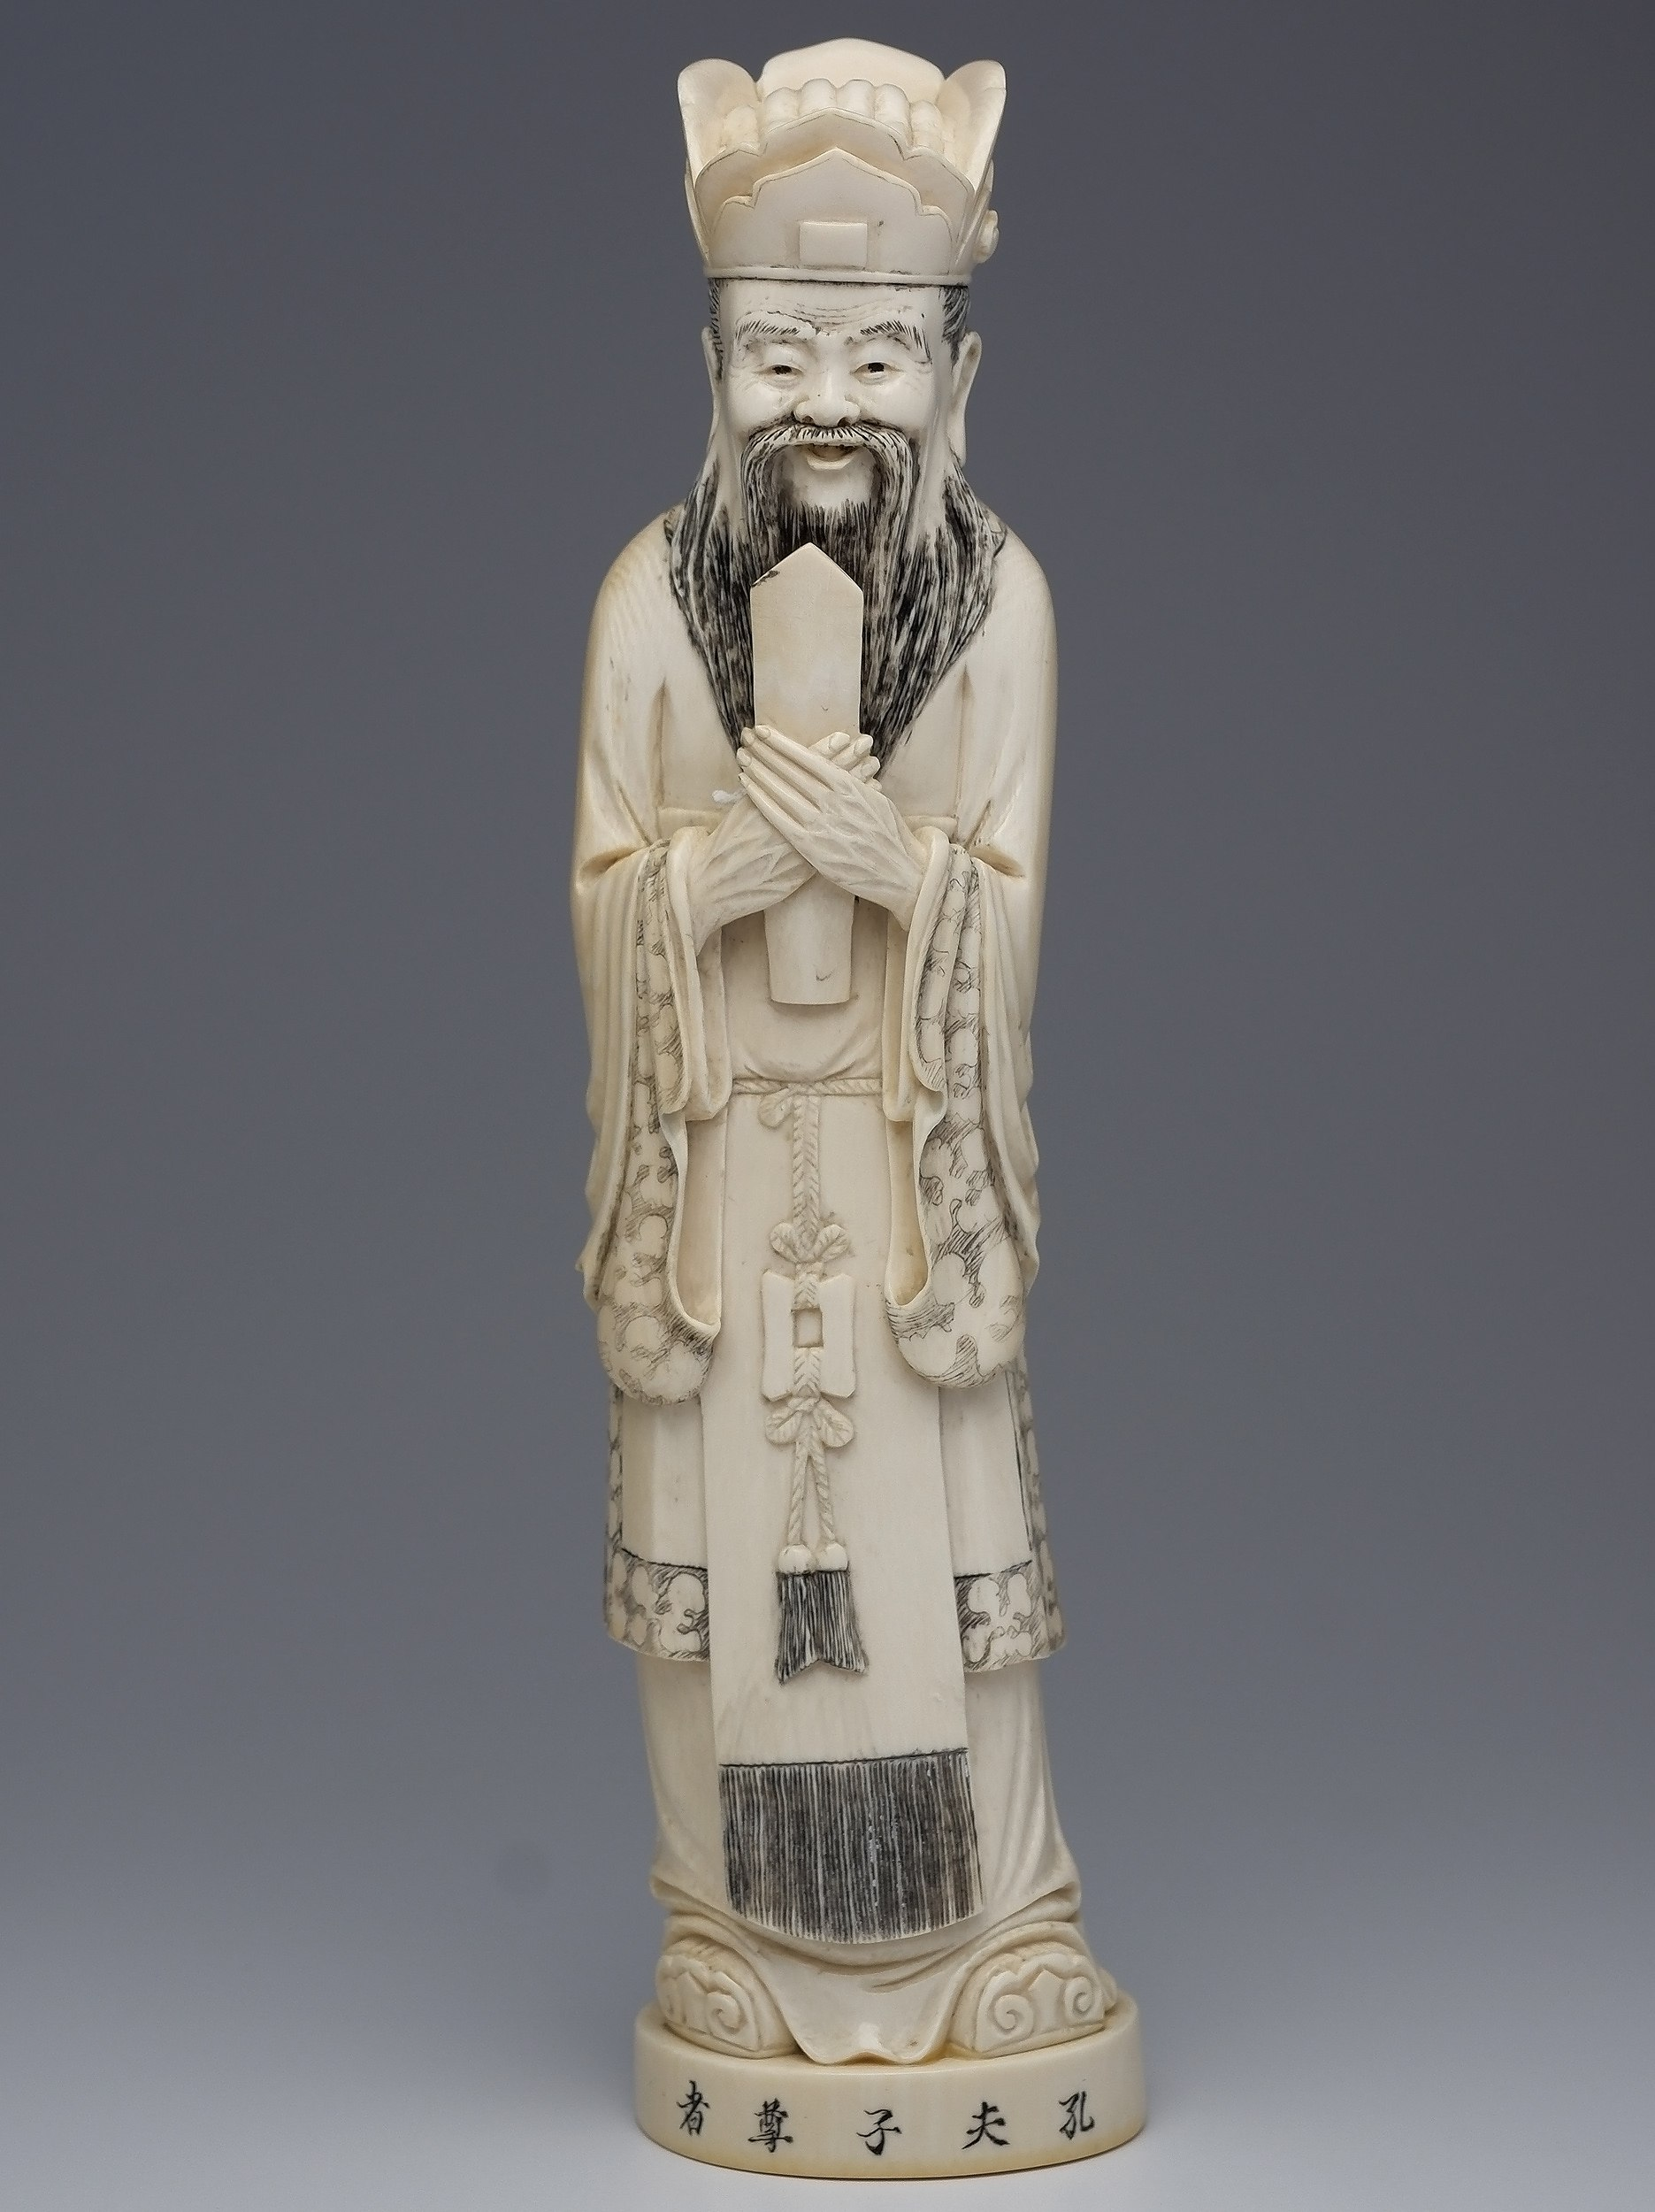 'Fine Chinese Inscribed and Stained Ivory Figure of a Sage, Early to Mid 20th Century'